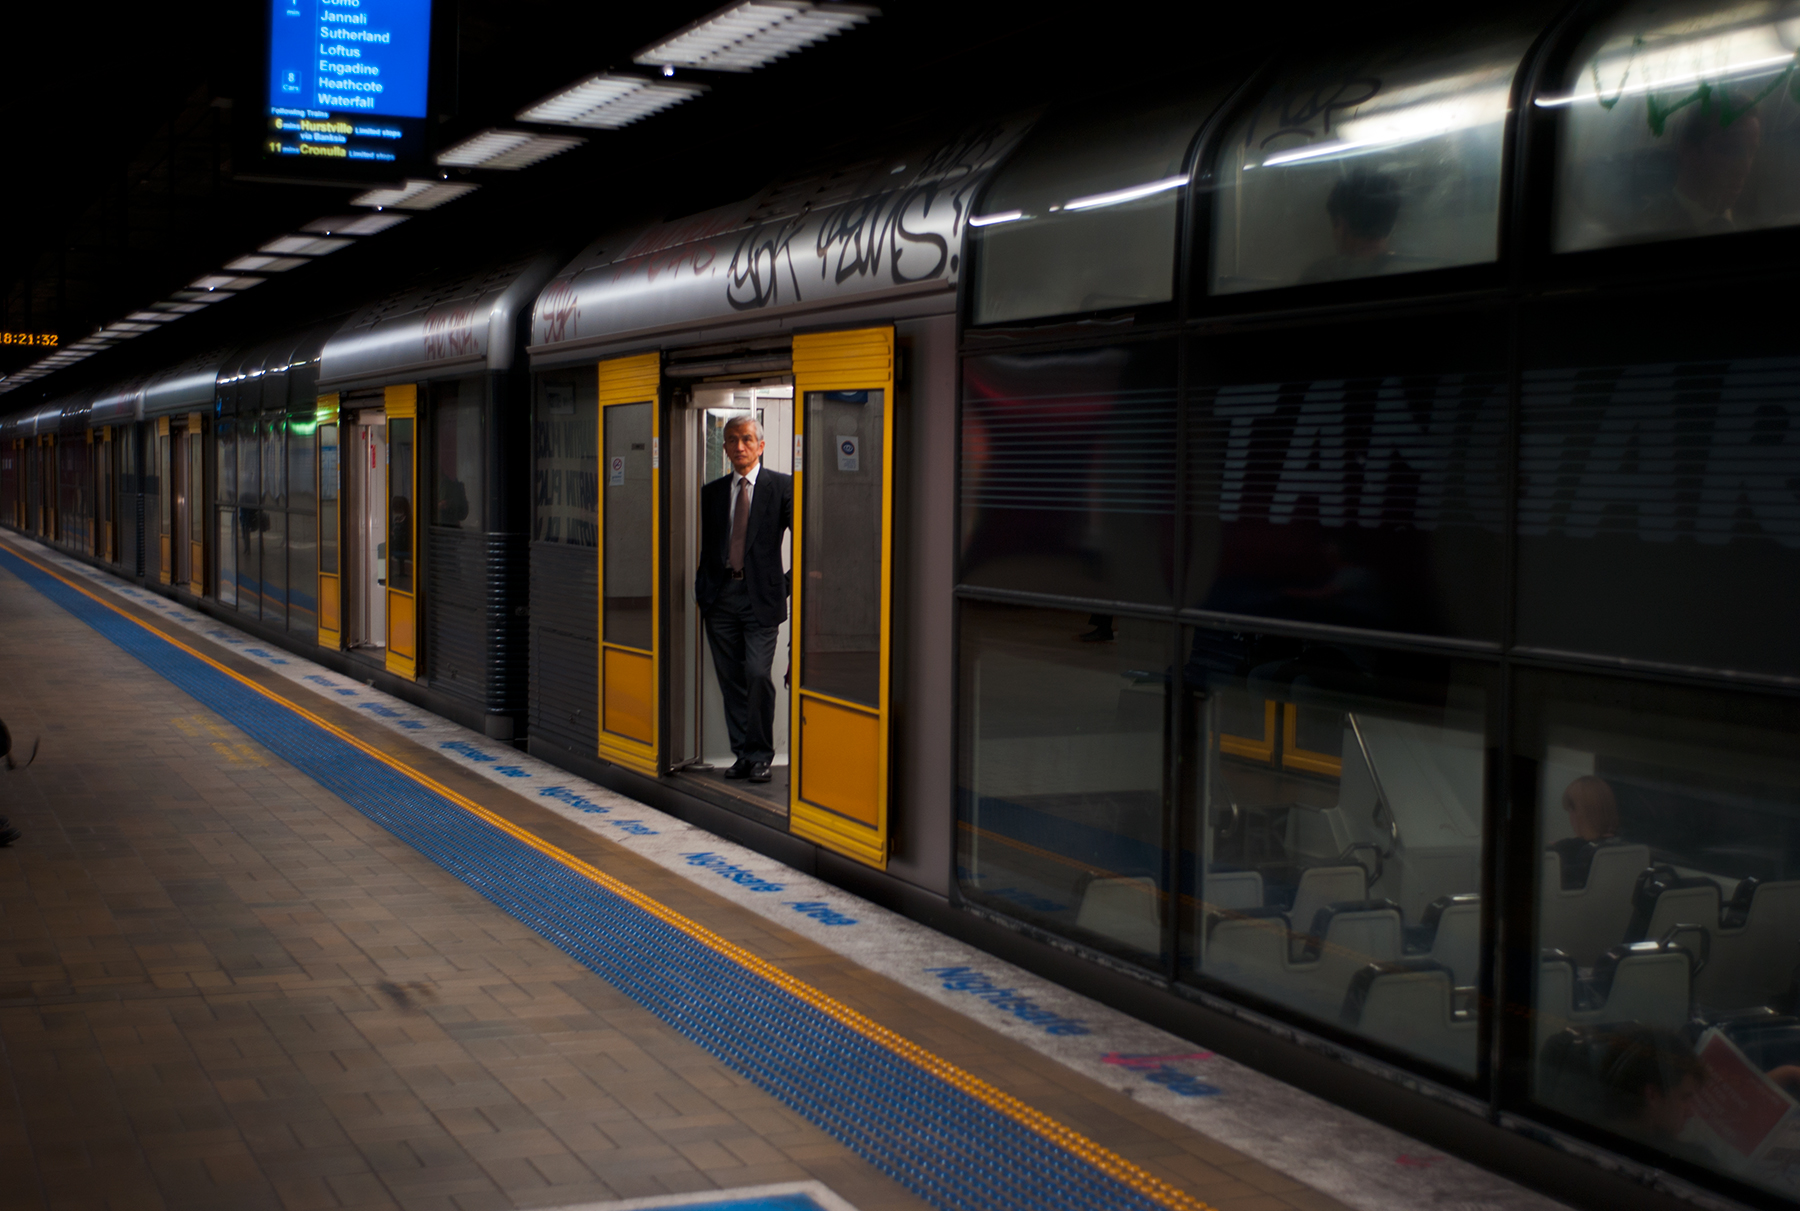 Martin Place Station, Sydney 2011. © Mike Keevers.